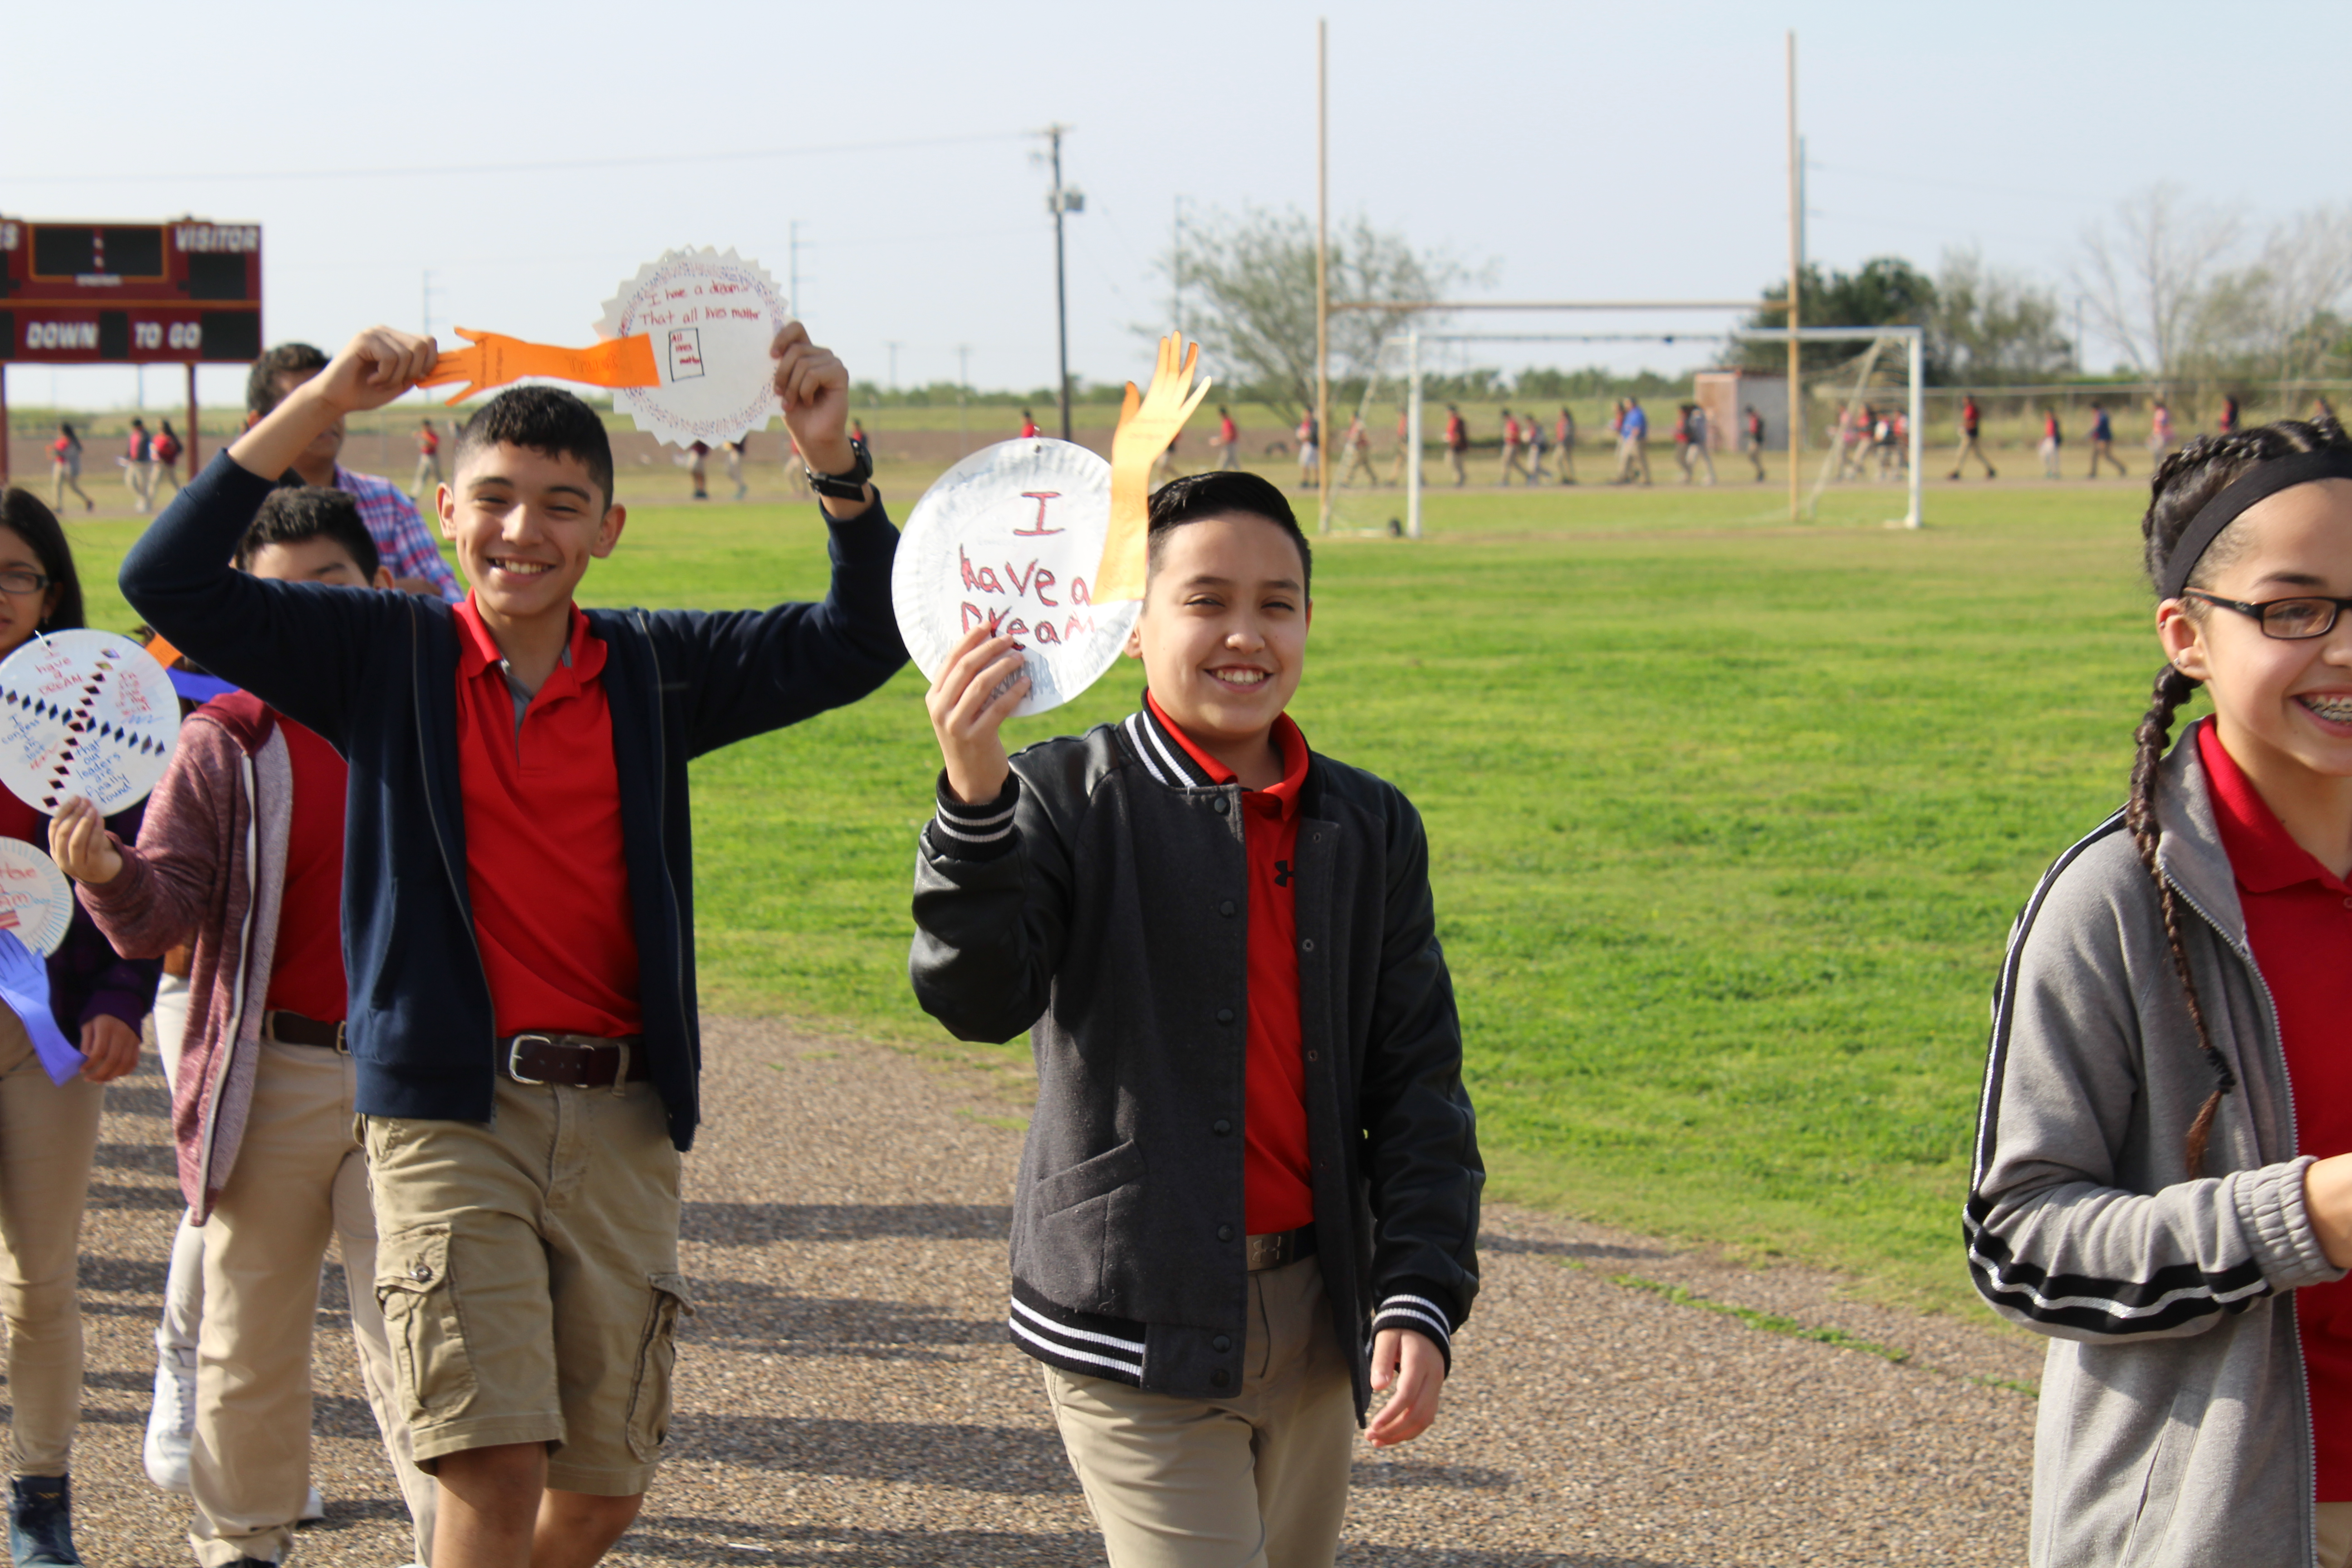 Silent Civil Rights March Held At Solis Middle School In